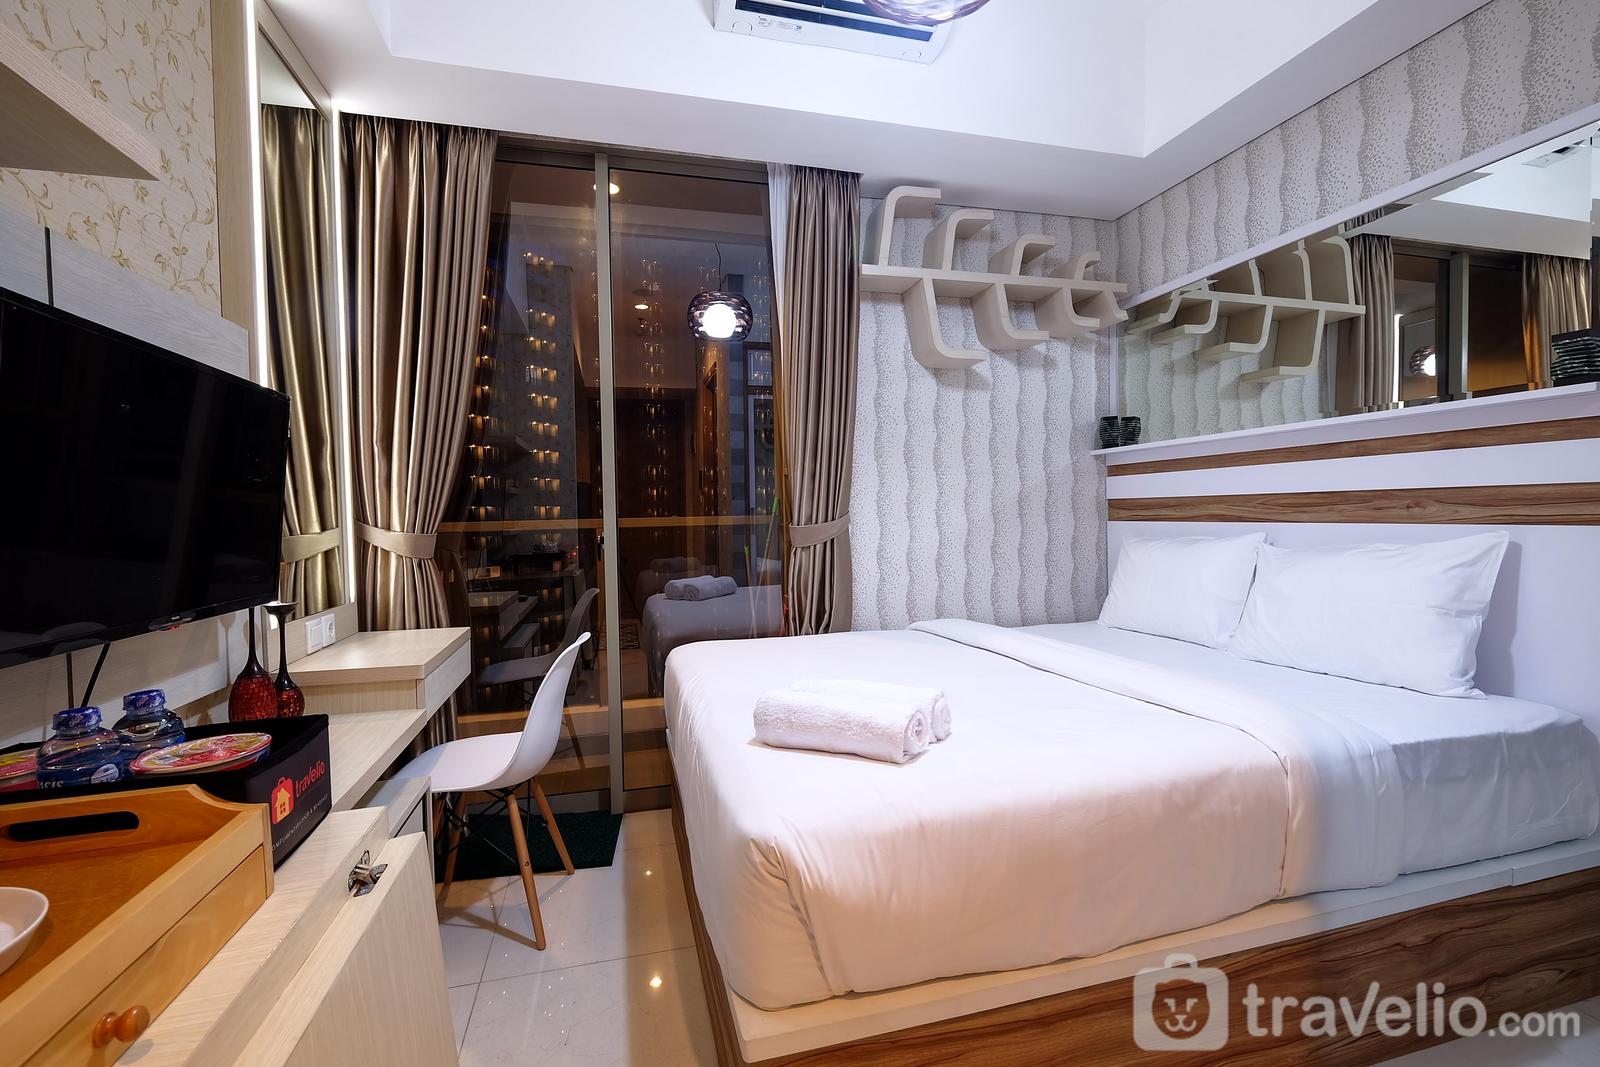 Taman Anggrek Residence - Luxurious Studio Taman Anggrek Residence Apartment in Strategic Area By Travelio